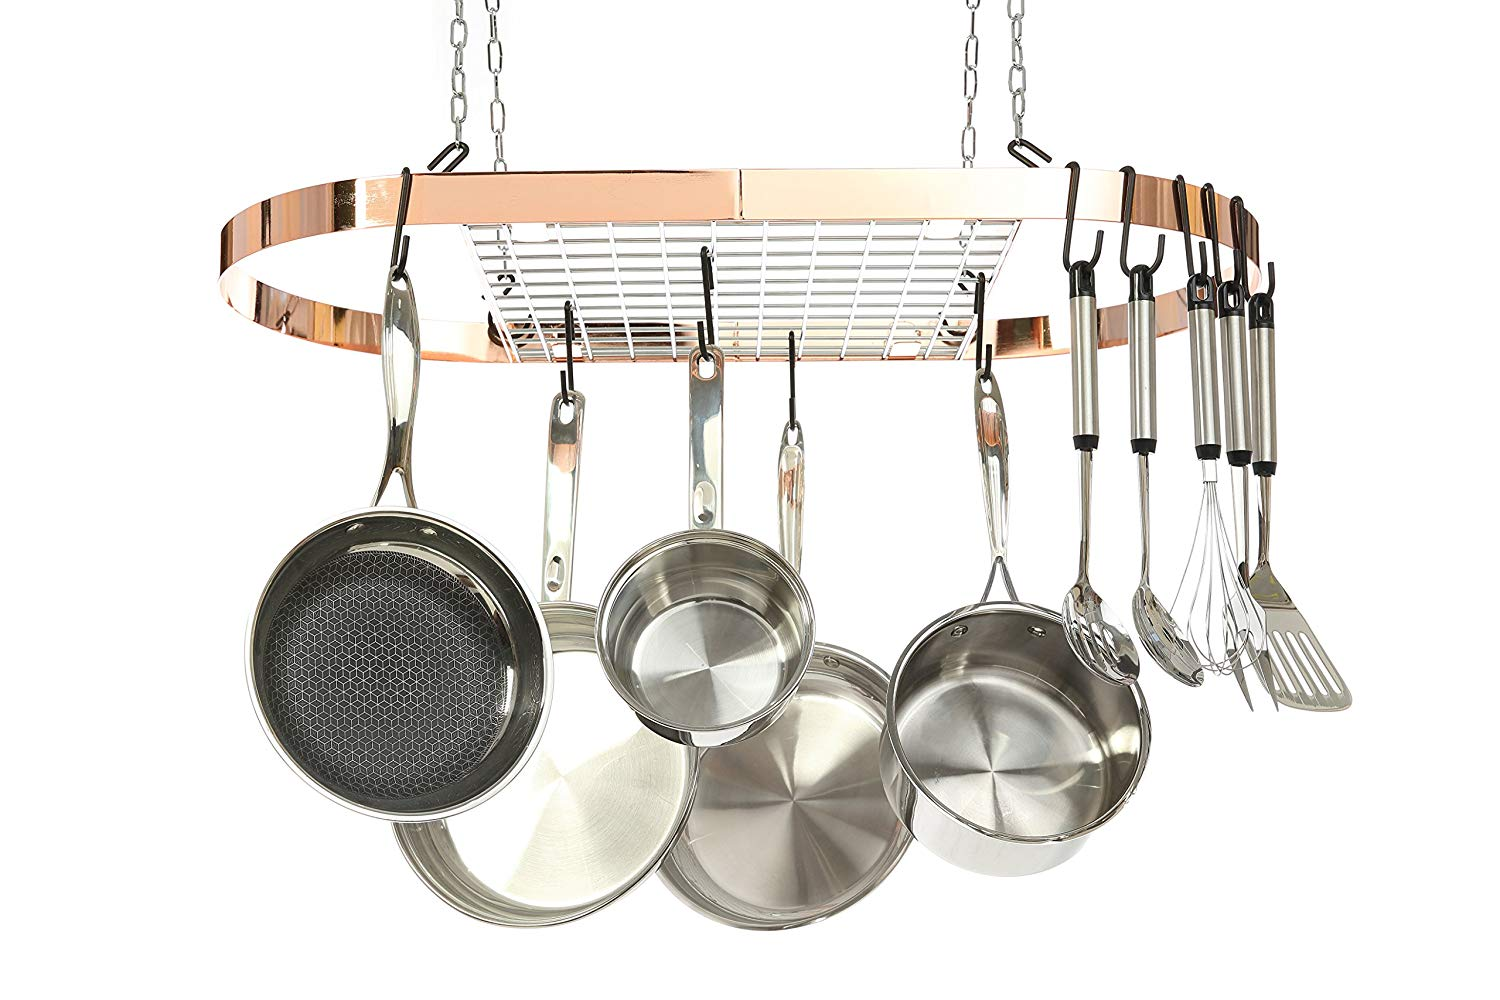 Kinetic Pot and Pan Rack with Ceiling Hooks - Premium Oval Mounted Oragnizer Rack with Multi Purpose Kitchen Organization and Storage for Home, Restaurant, Cookware, Utensils (Hanging Metallic Copper)